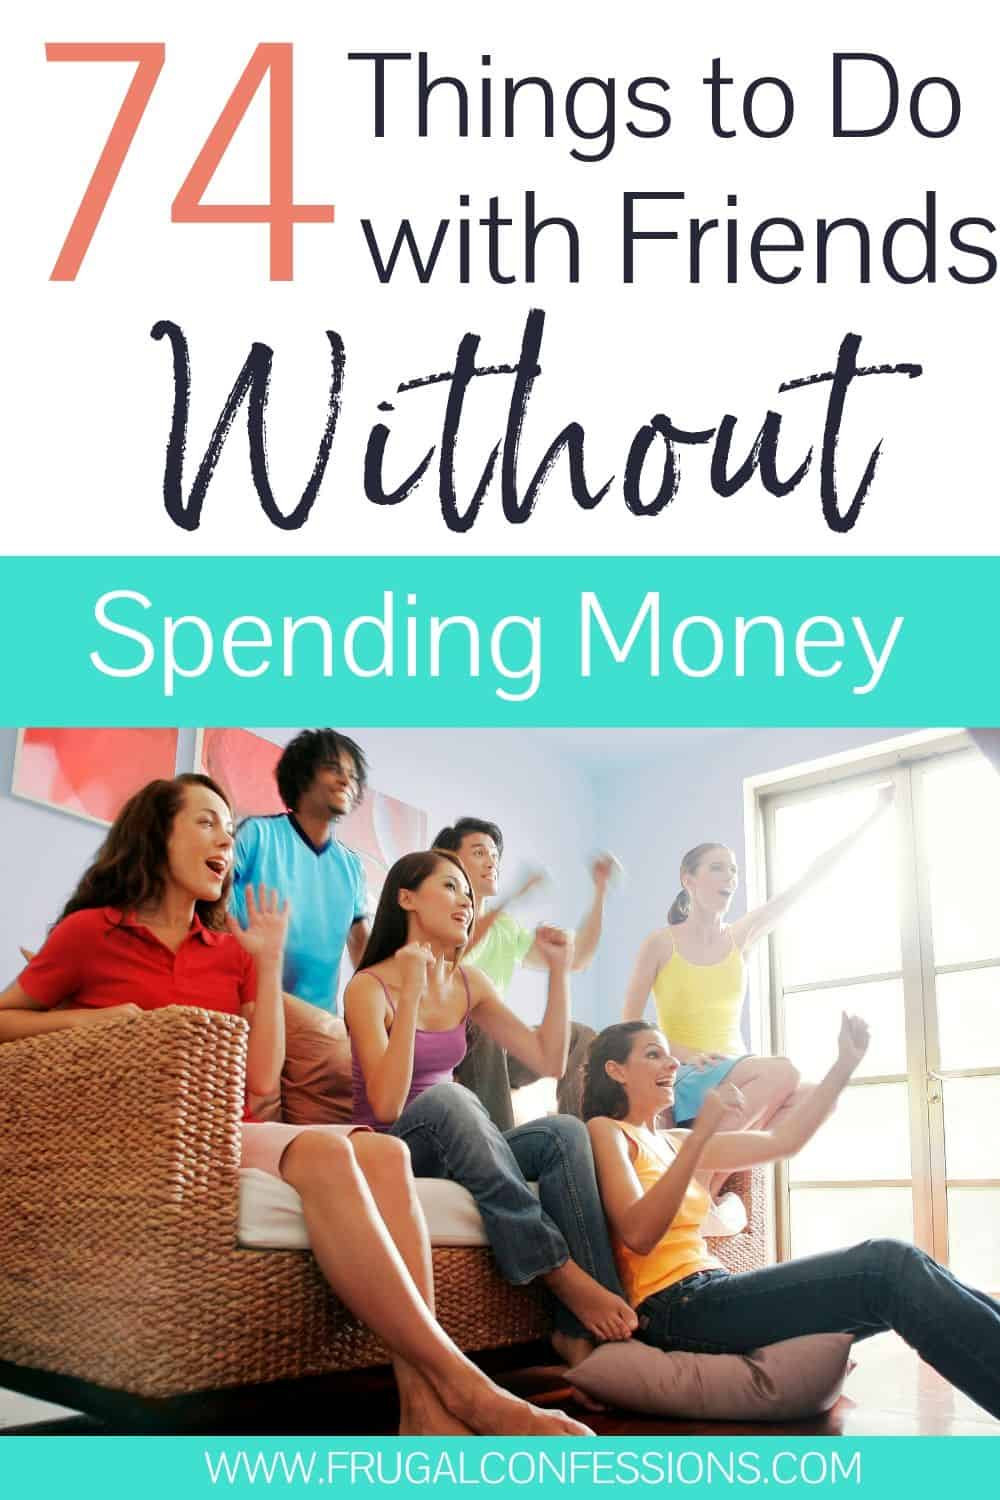 """group of friends hanging out together, text overlay """"74 things to do with friends without spending money"""""""